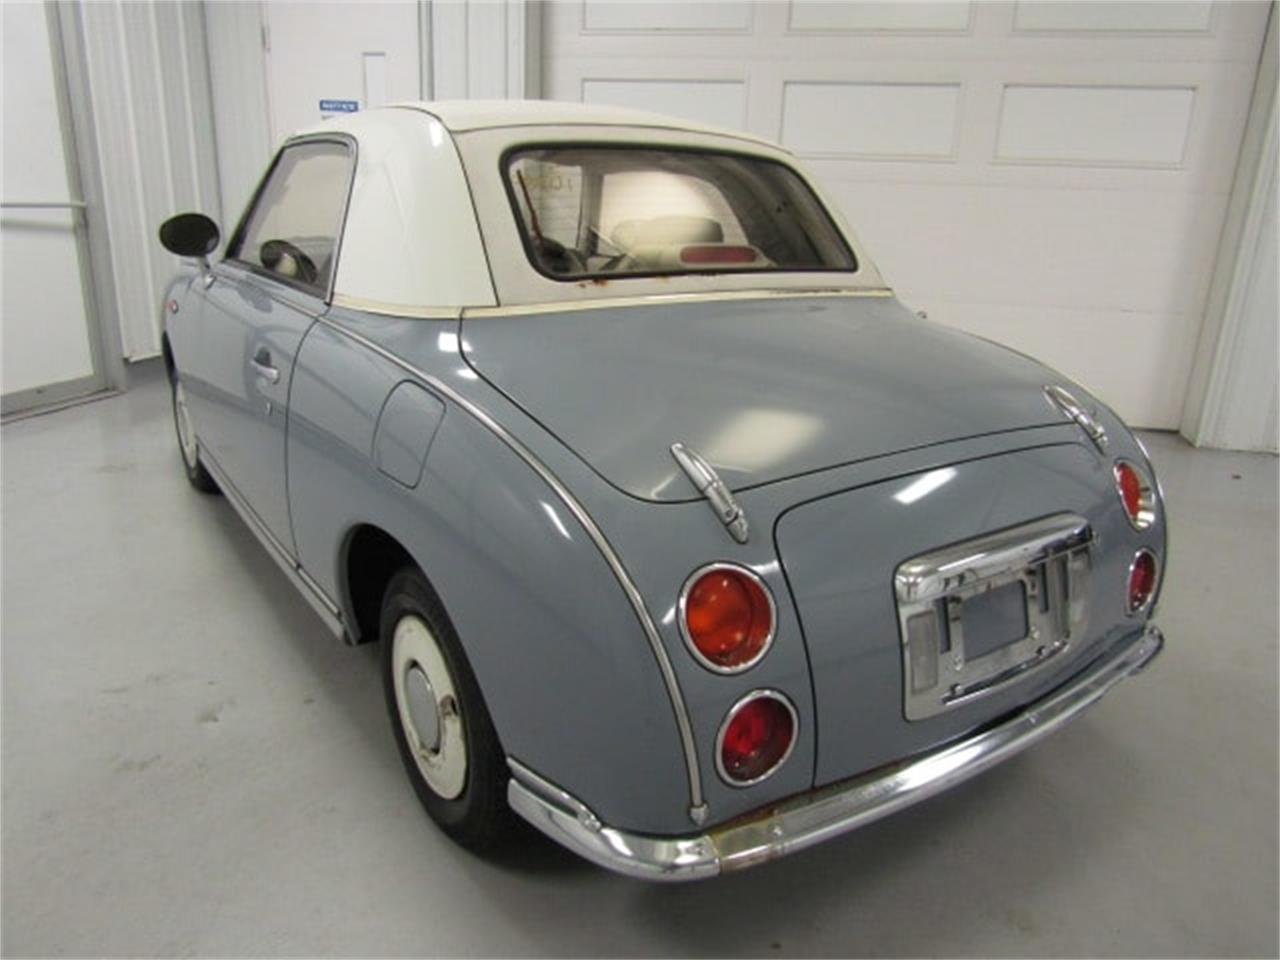 Large Picture of 1991 Nissan Figaro located in Christiansburg Virginia - $10,900.00 - JZ1Z